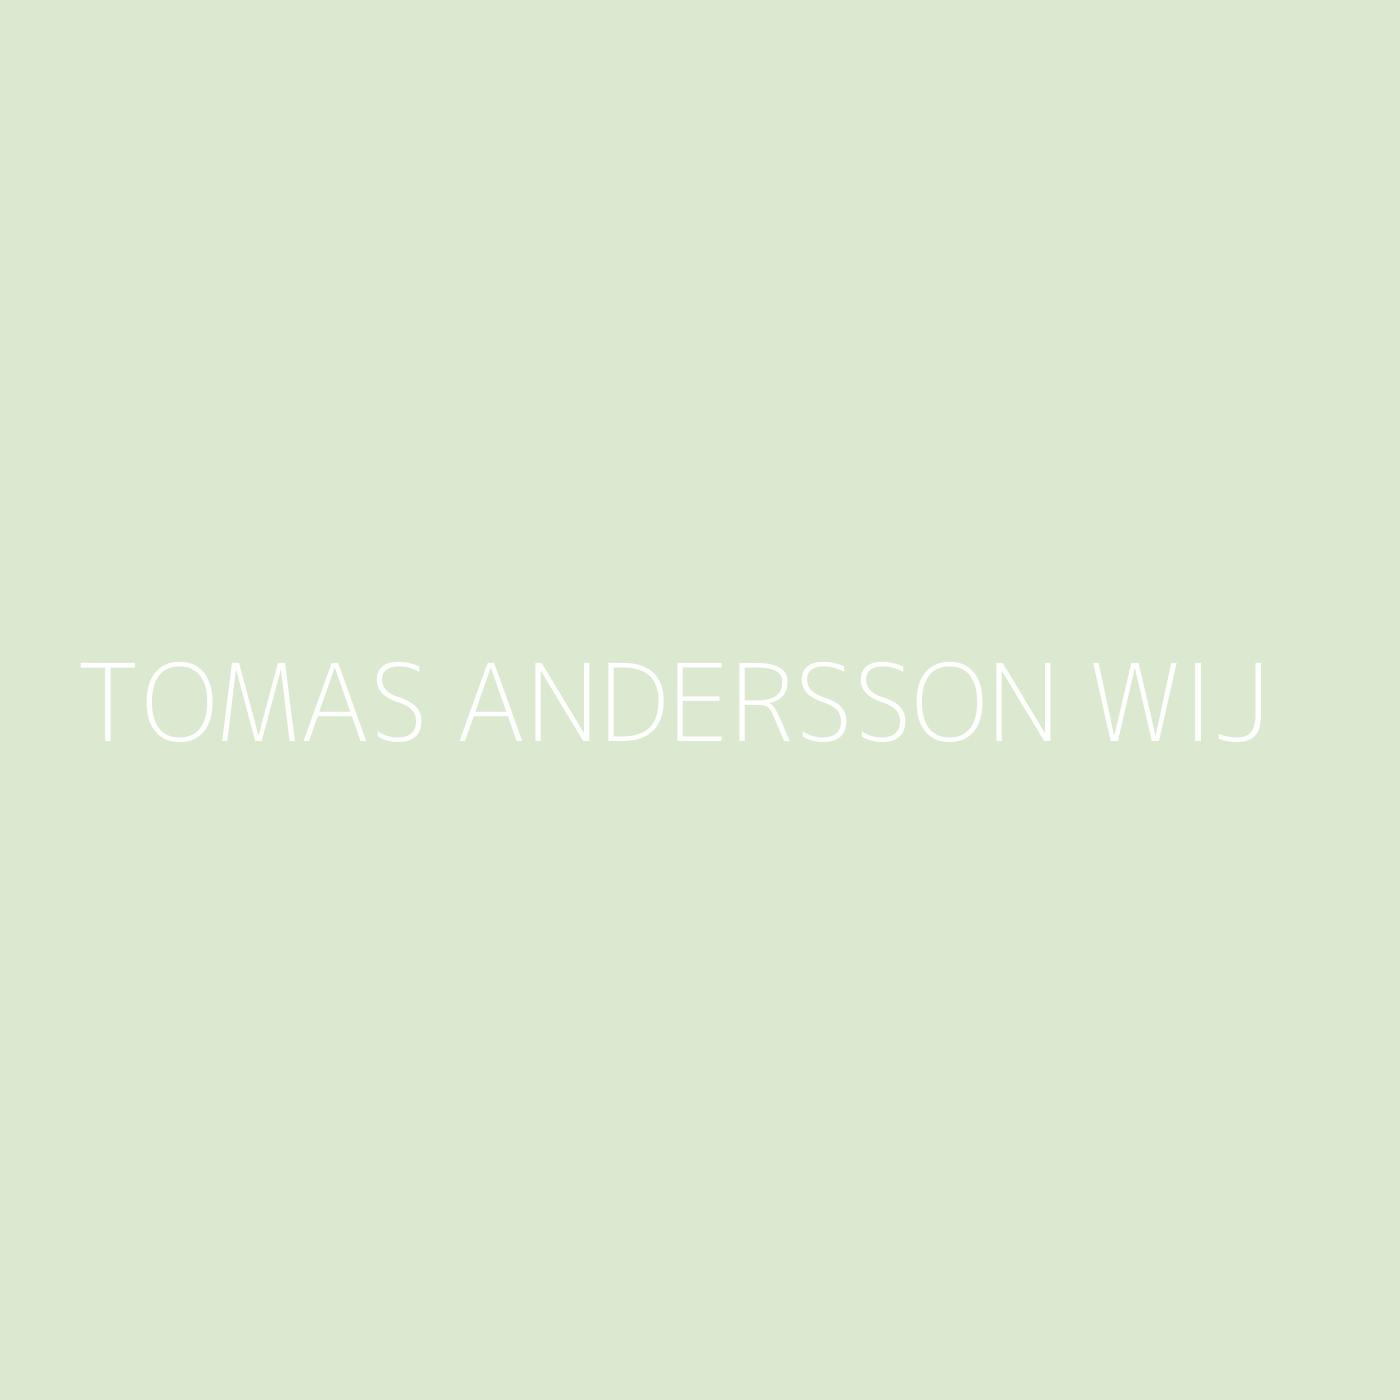 Tomas Andersson Wij Playlist Artwork